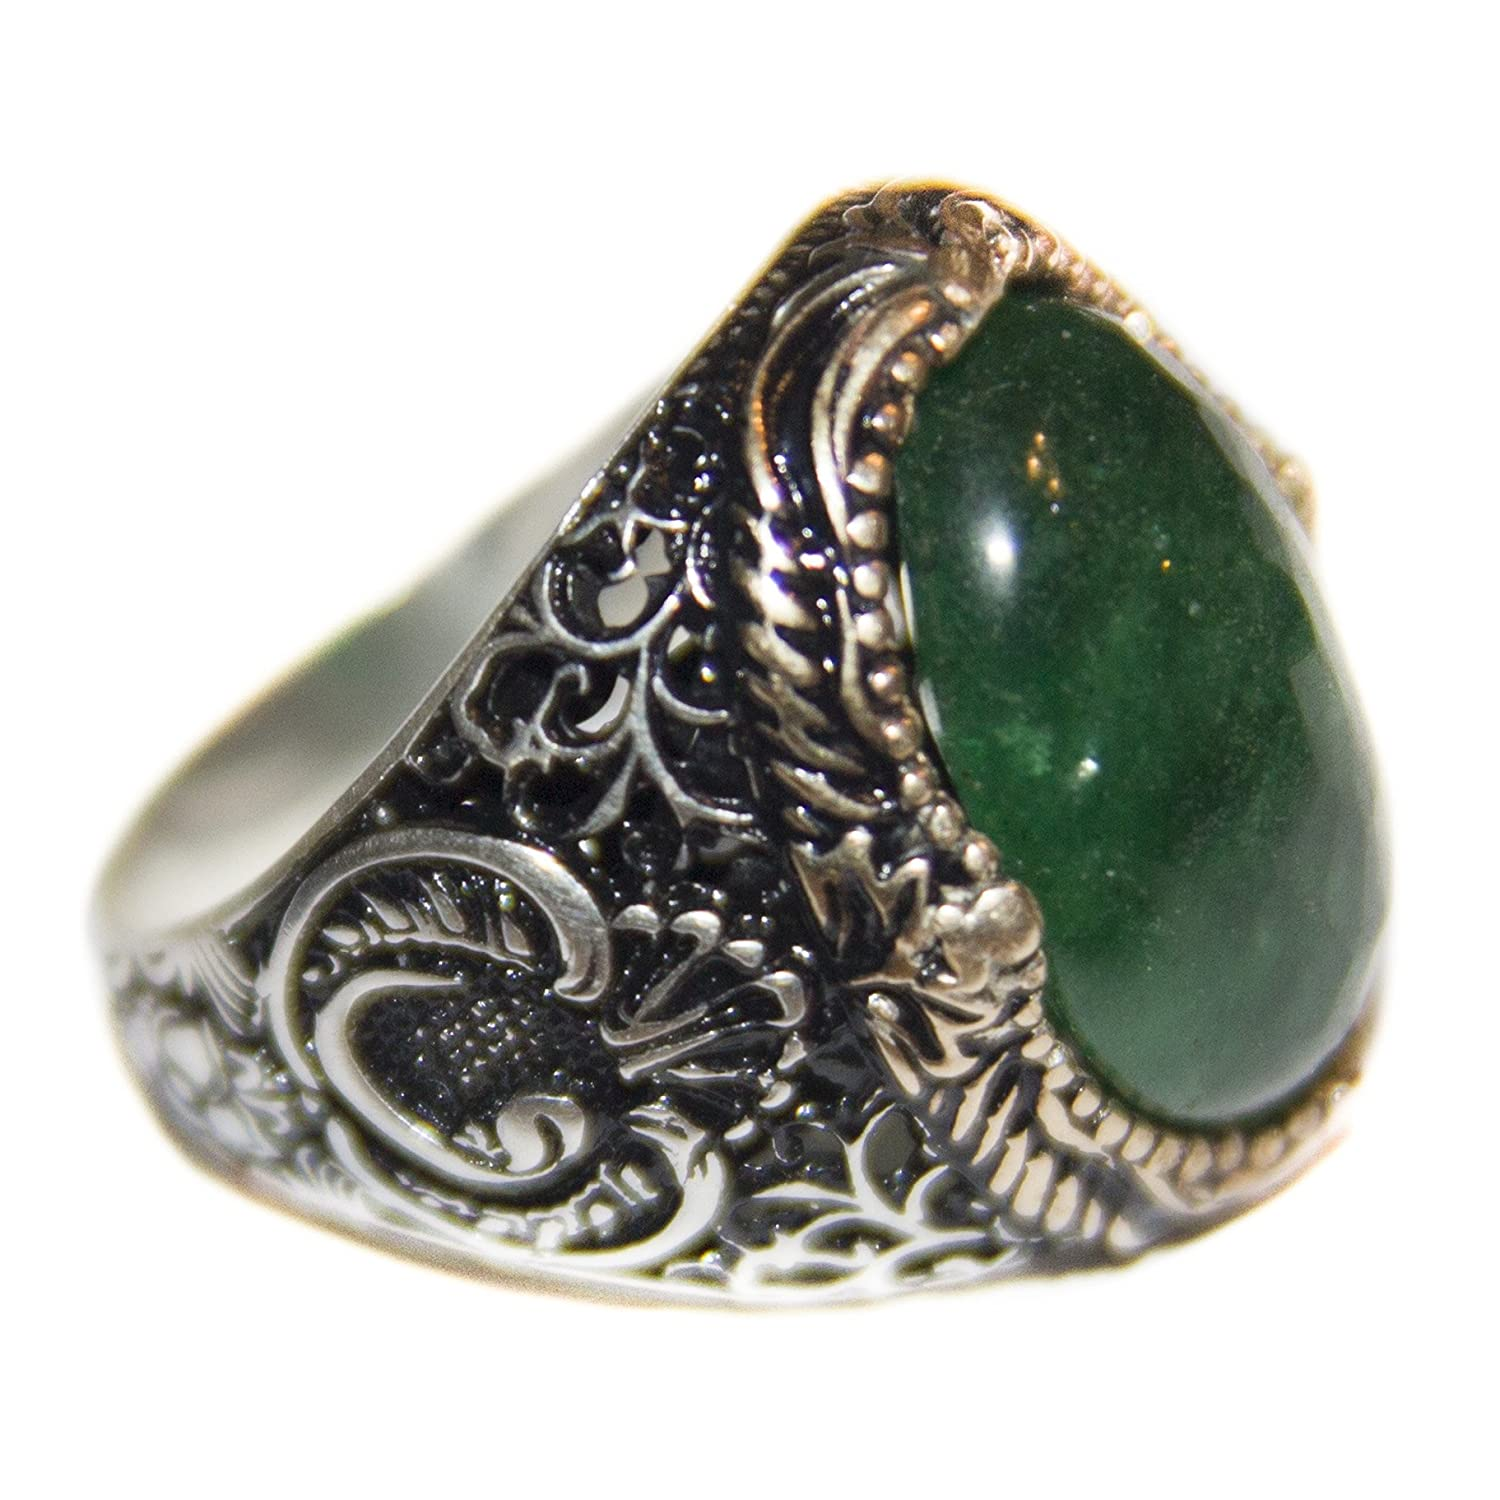 Falcon Jewelry Men's sterling silver ring, natural emerald stone, handmade, Express Shipping